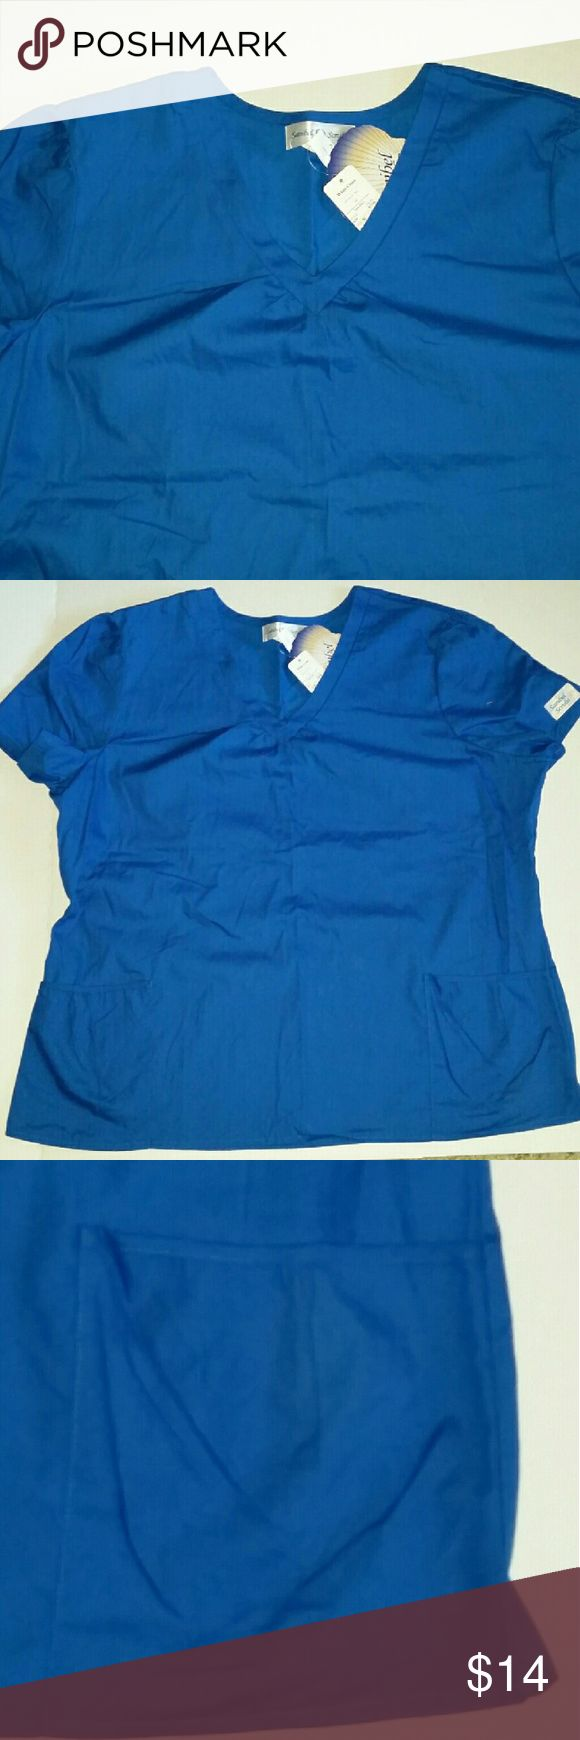 XL NWT SANIBEL SCRUBS Scrub top royal blue *CUTE* Sanibel scrubs cute royal blue scrub top Cute gathered detail around the neck and pockets. Size XLarge 55% cotton, 45% polyester  Style# SA636 New with tags  *If interested I do have the matching pants Size large & lab coat Size Large also listed.* sanibel scrubs  Tops